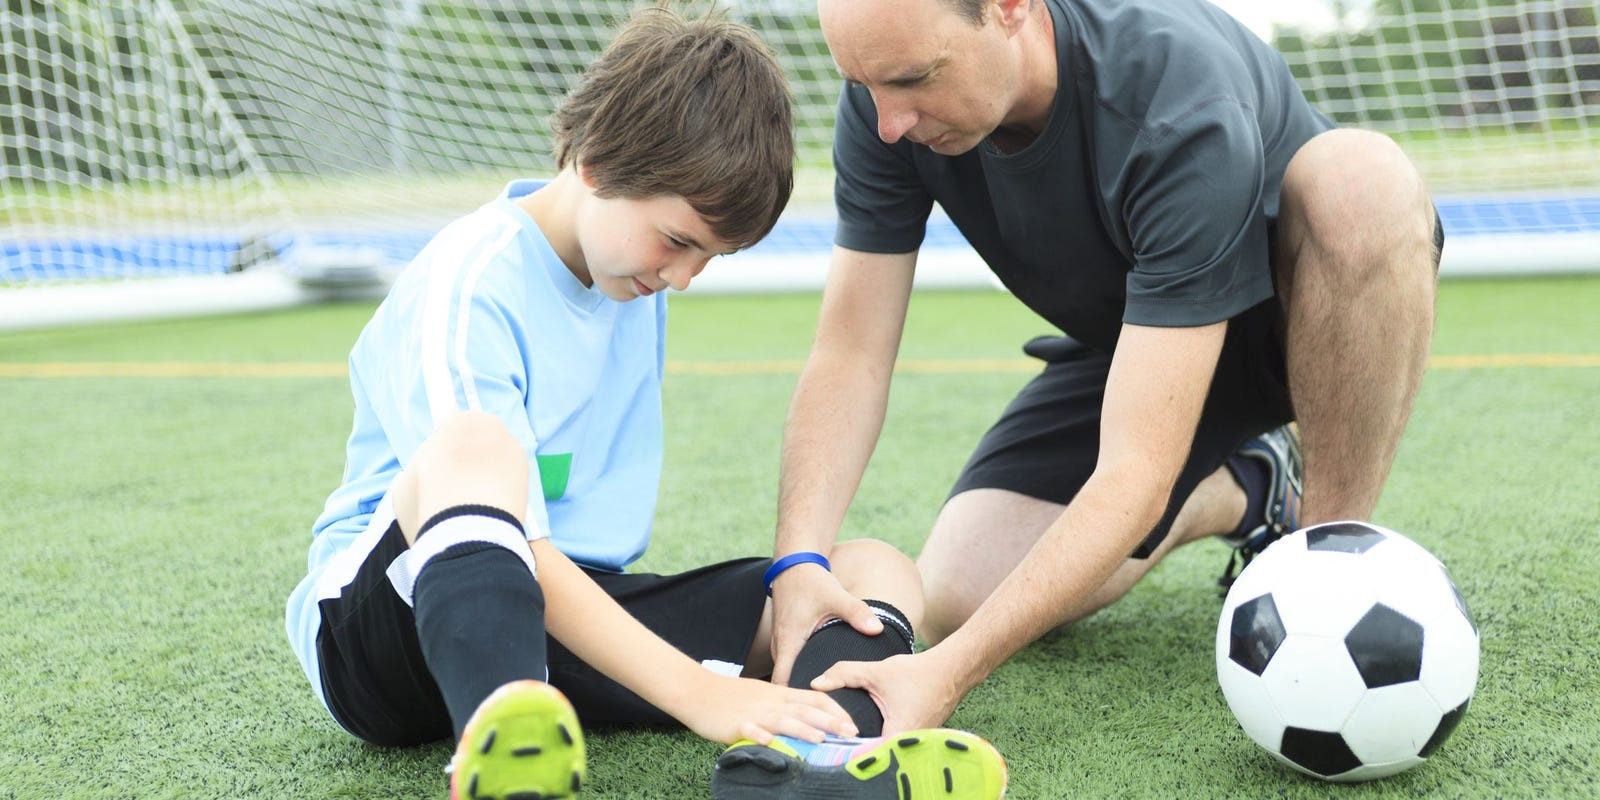 Injury Prevention Tips to Keep Your Young Athlete on the Field